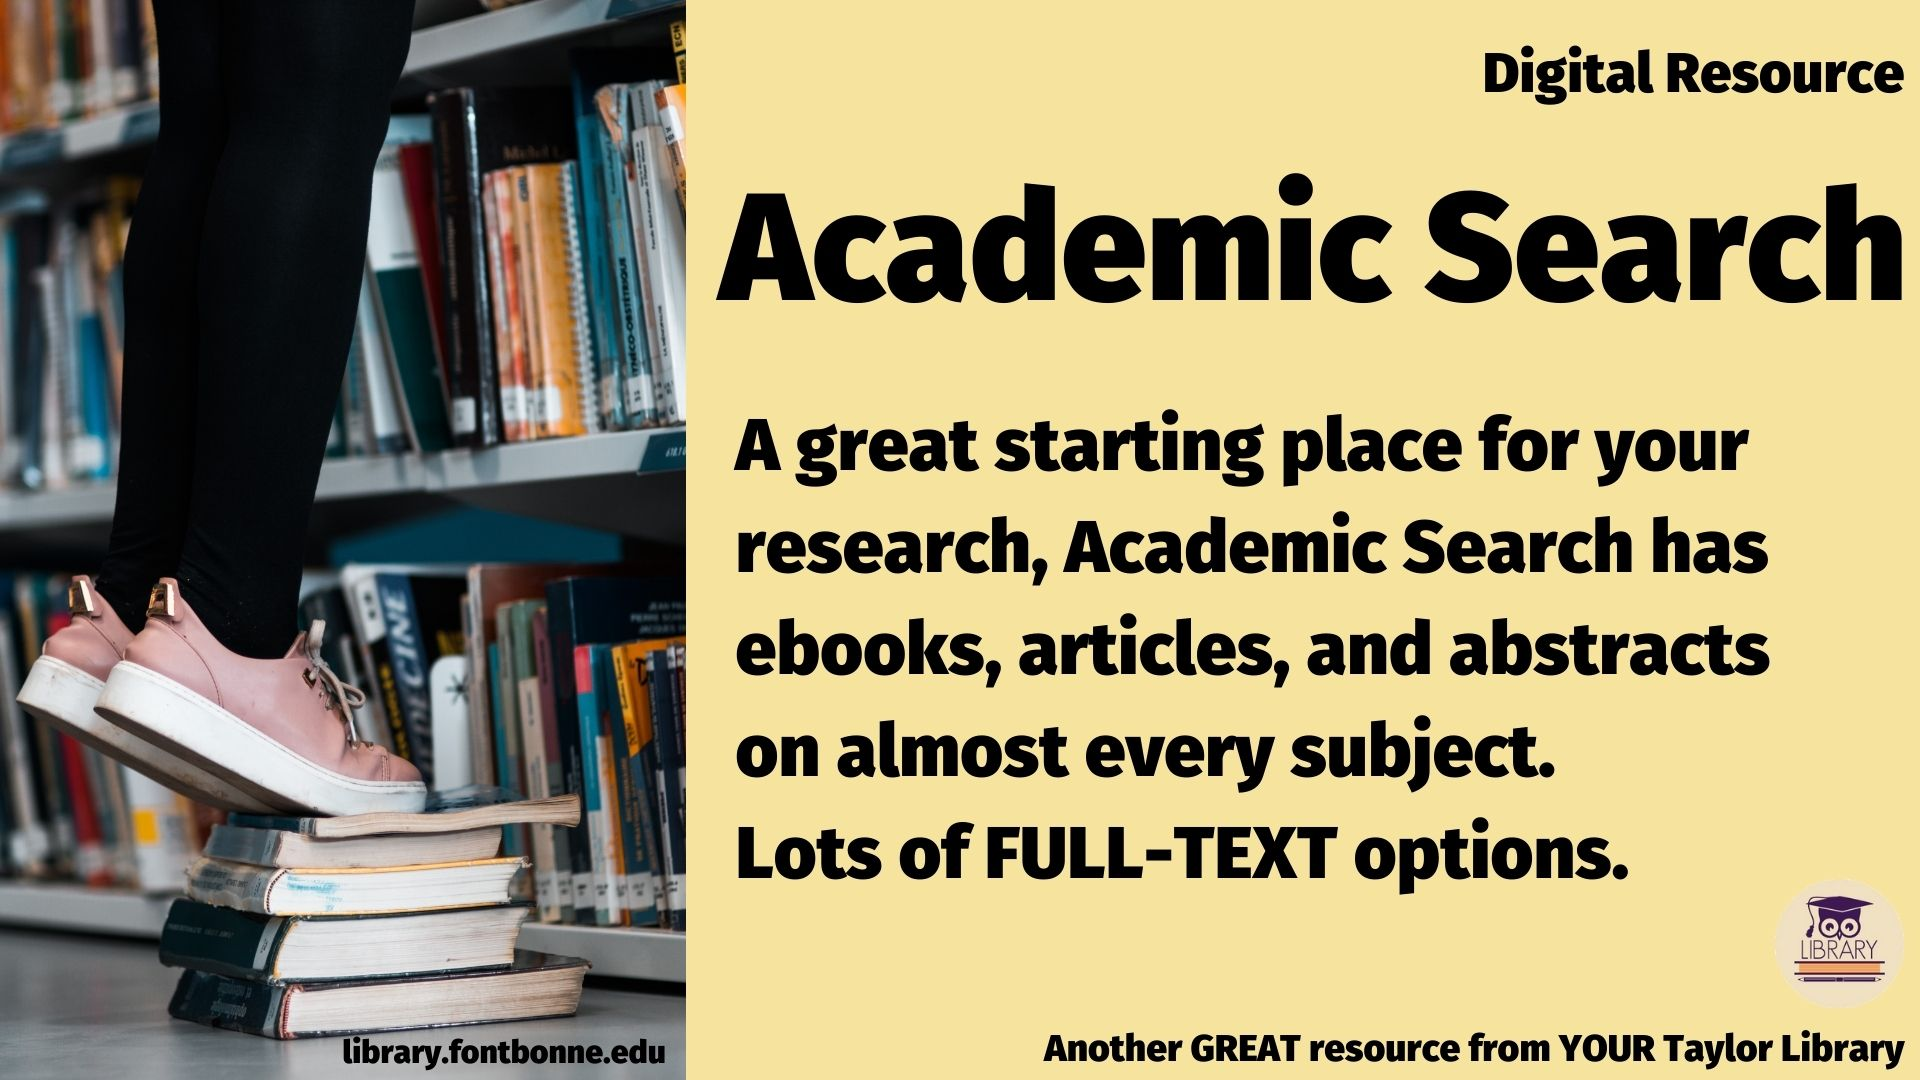 Academic Search is the right place to start your research!